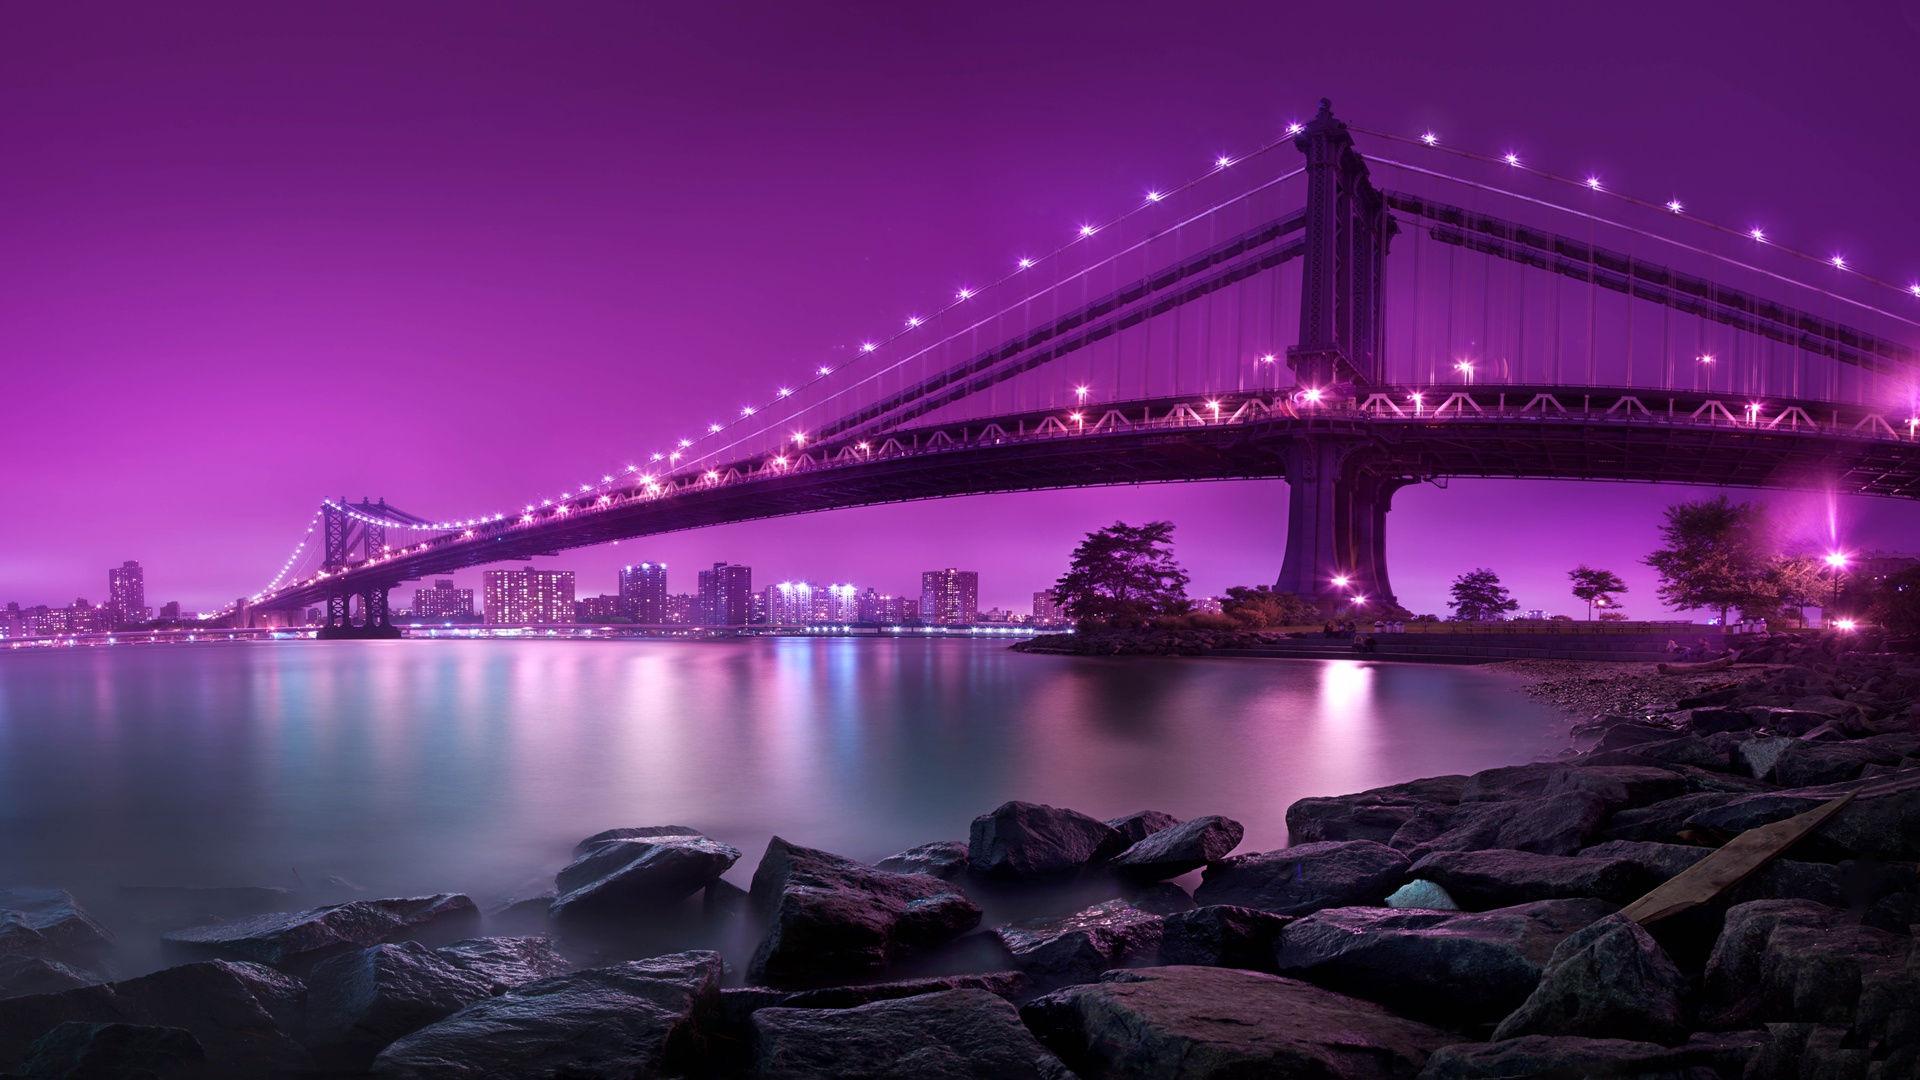 Manhattan Bridge New York City Wallpapers HD Wallpapers 1920x1080